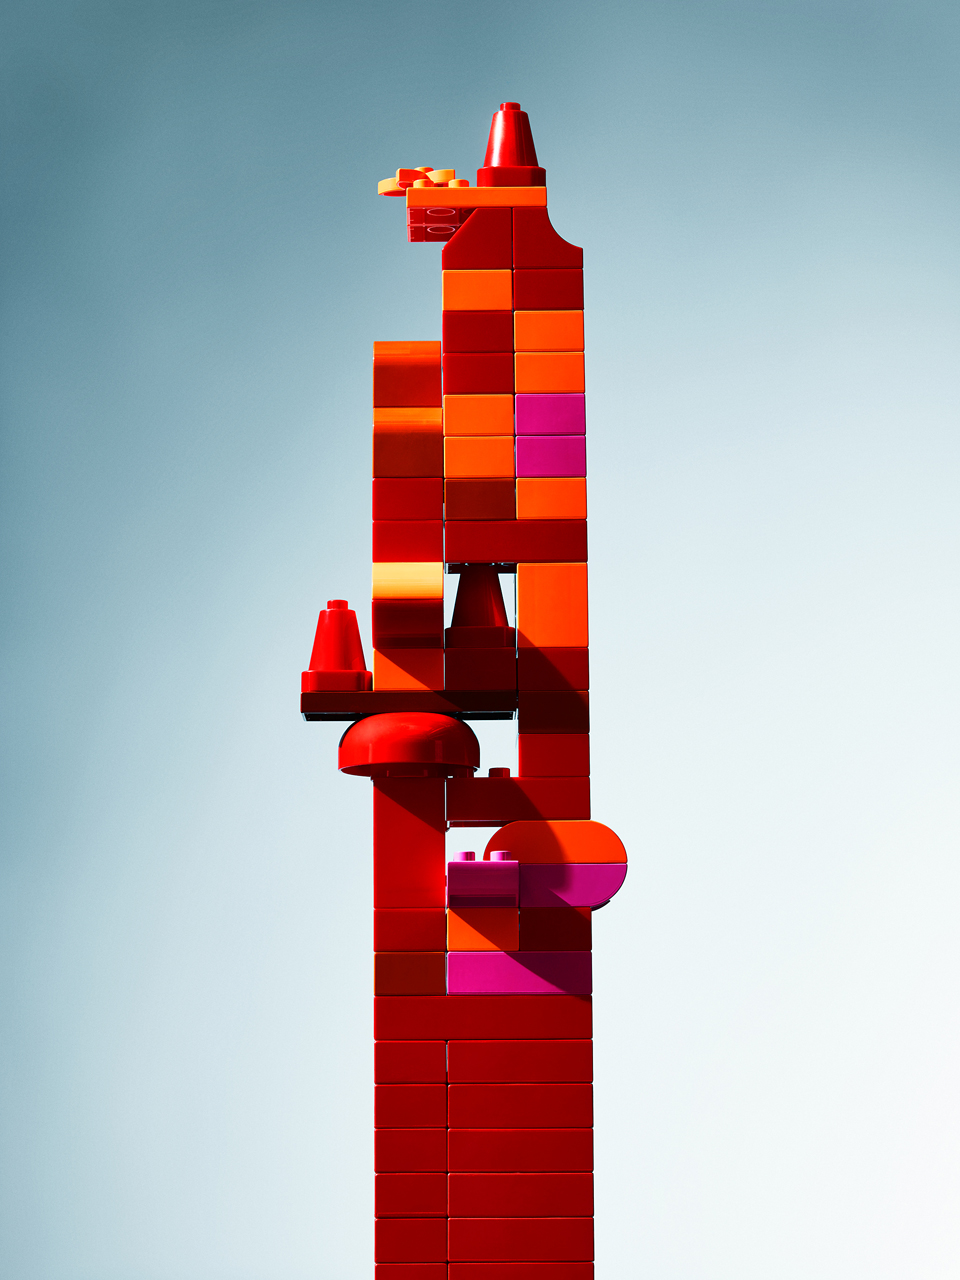 Sabine-Scheer-lego-duplo-tower-advertisingphotography